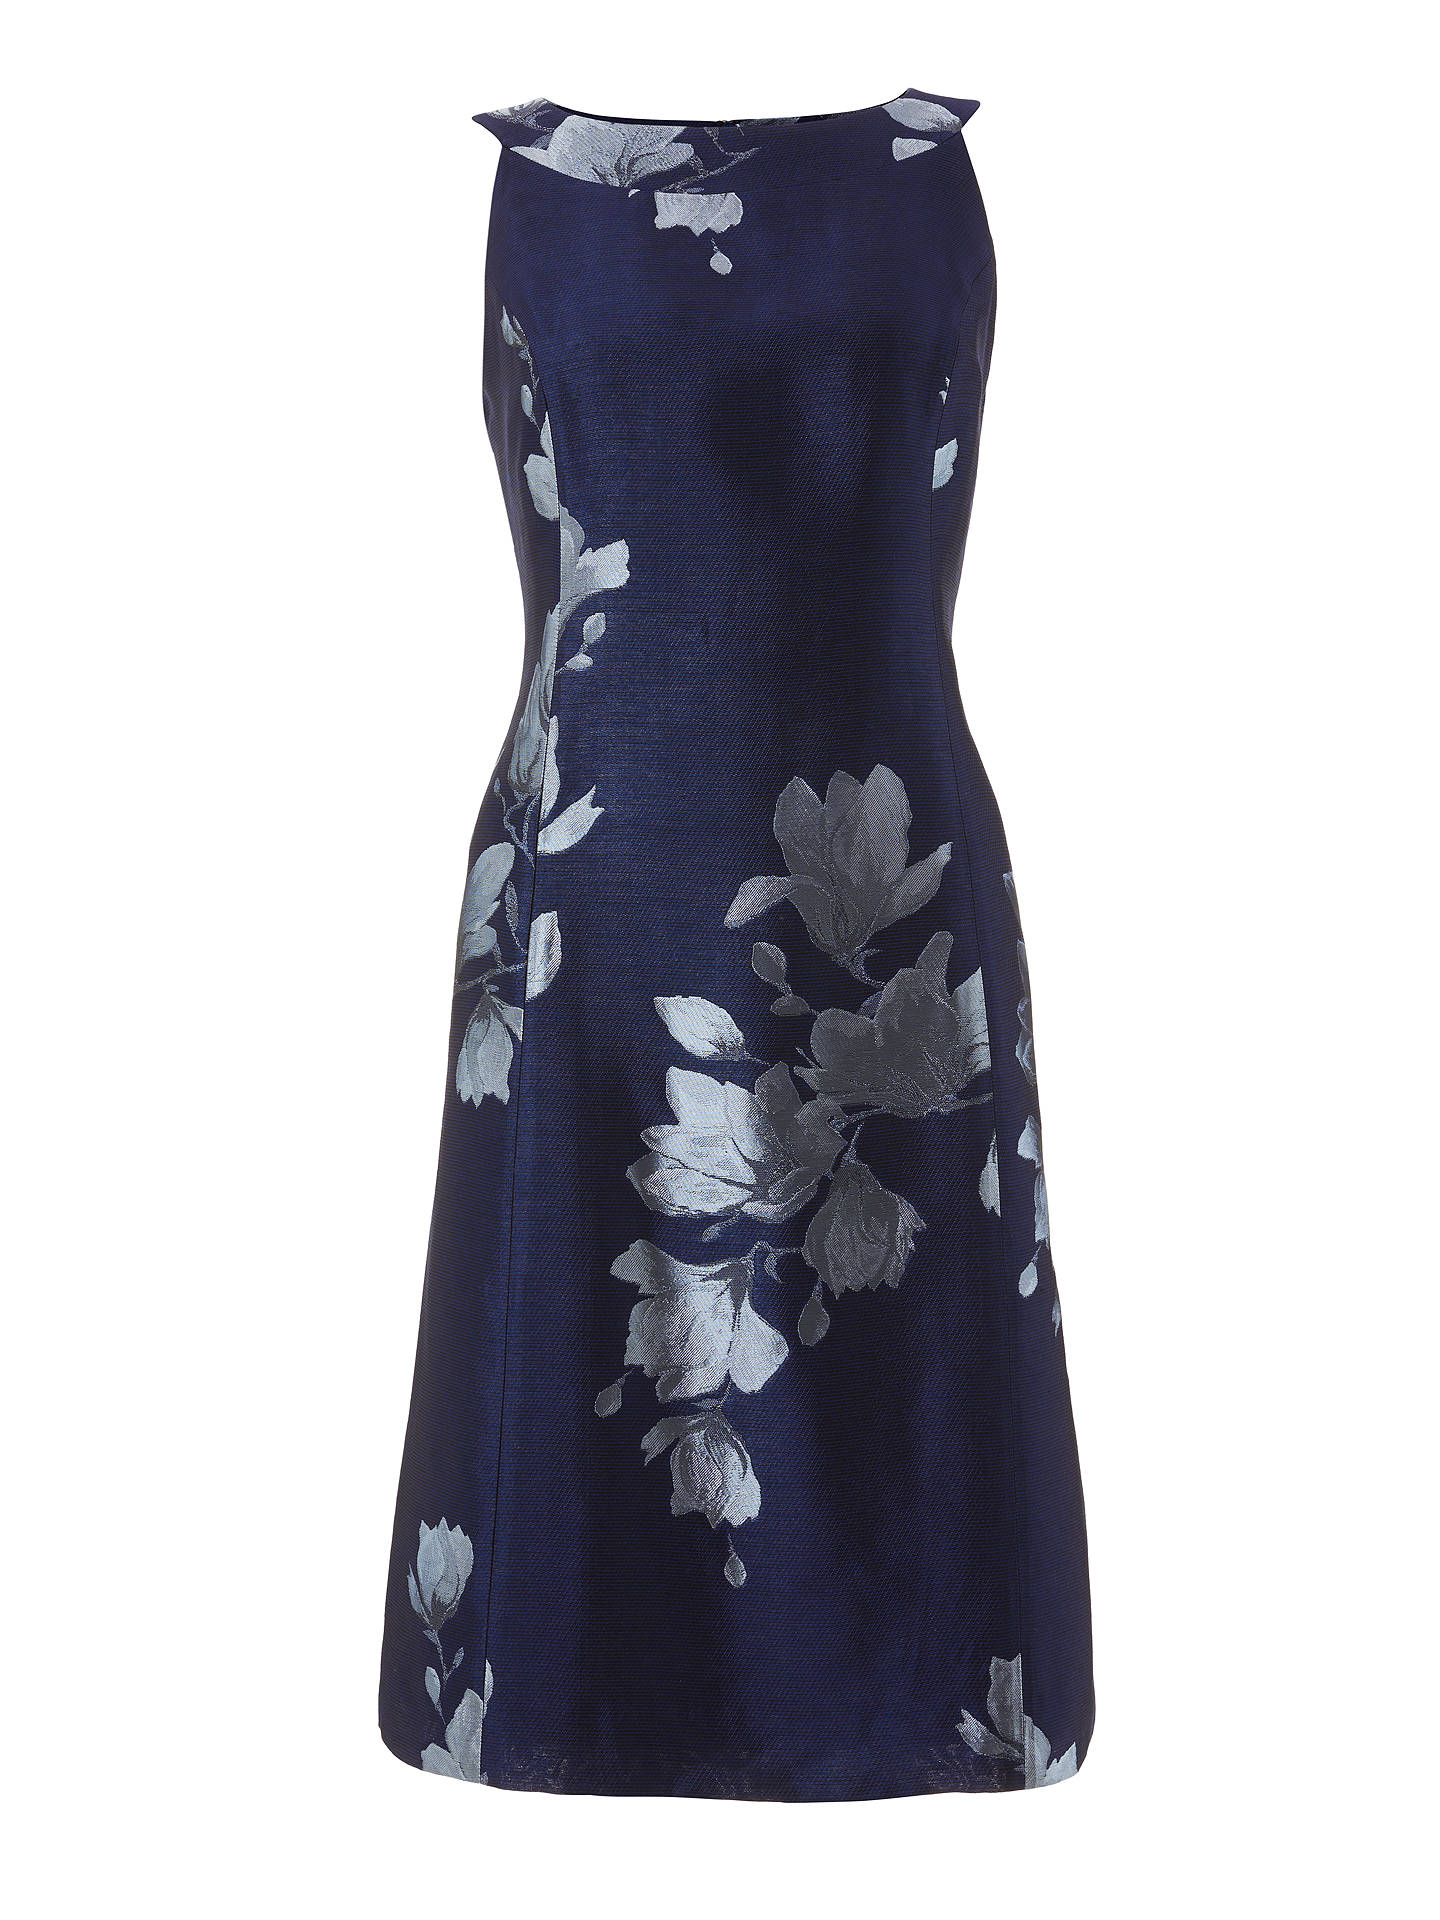 BuyBruce by Bruce Oldfield Jacquard Fit And Flare Dress, Navy, 10 Online at johnlewis.com